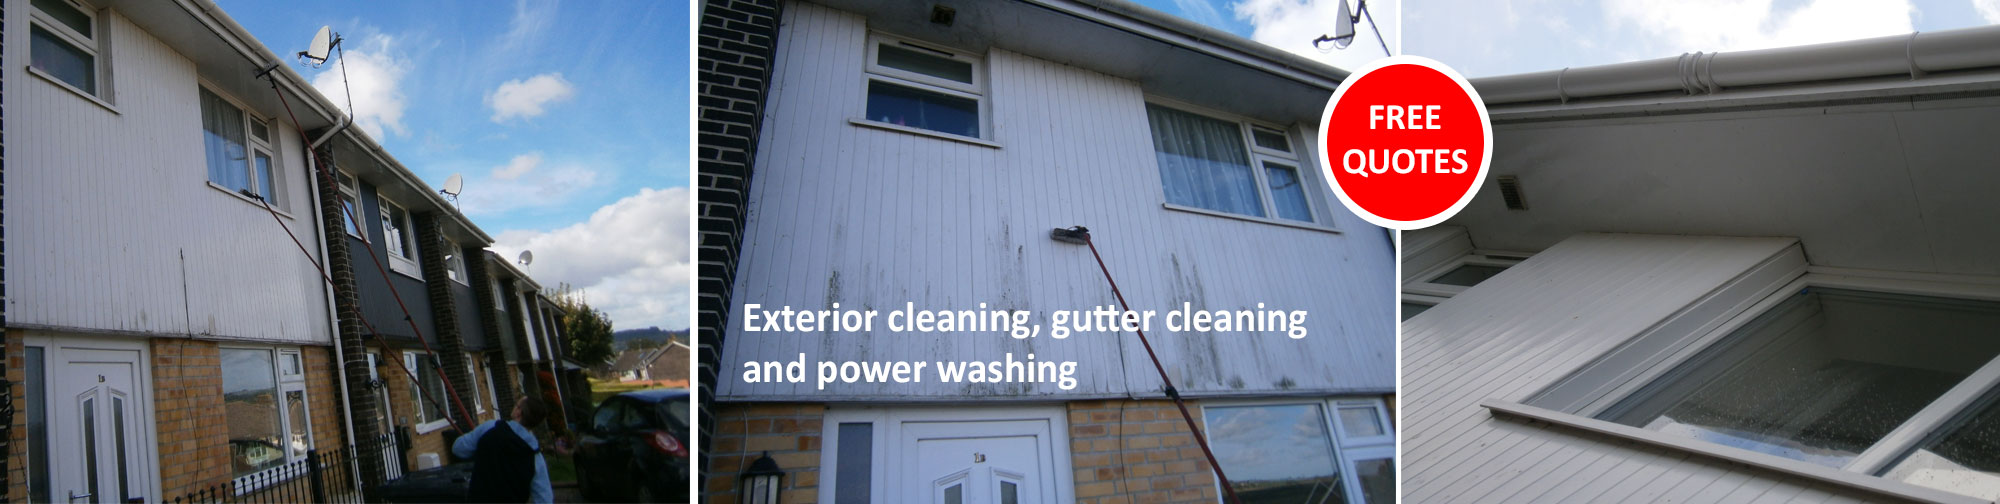 Gutter cleaning Axminster